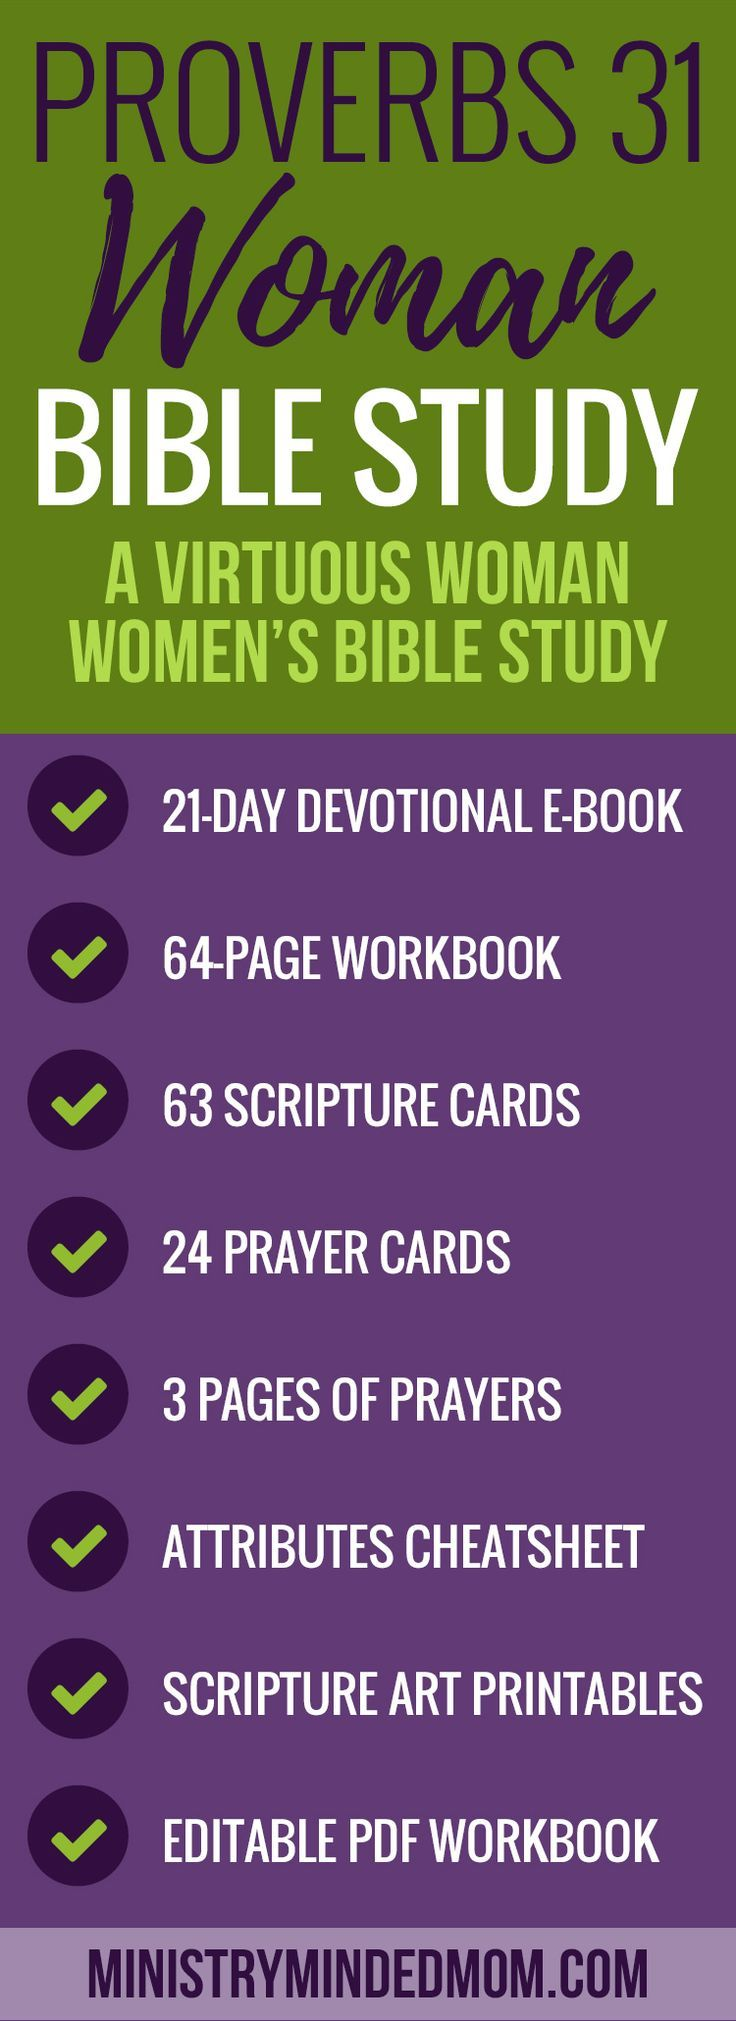 proverbs 31 woman bible study printable toolkit | women's ministry